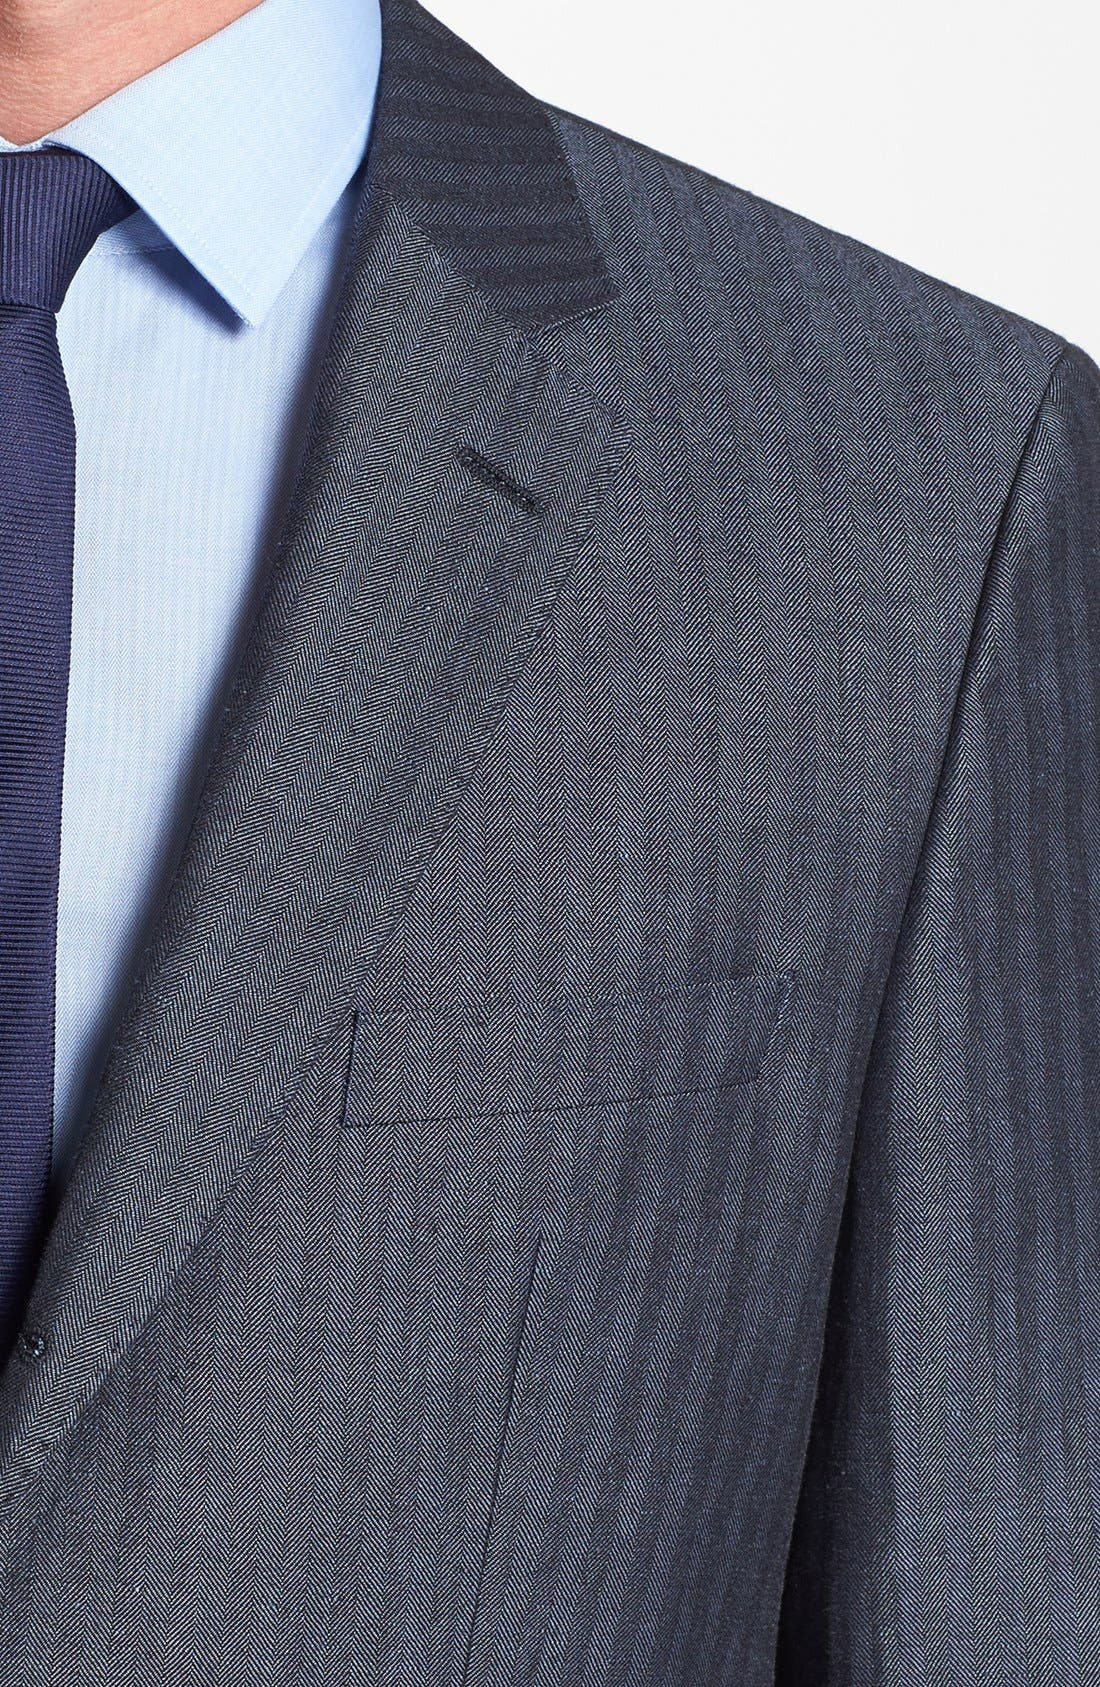 Alternate Image 3  - BOSS HUGO BOSS 'Johnston' Trim Fit Herringbone Sportcoat